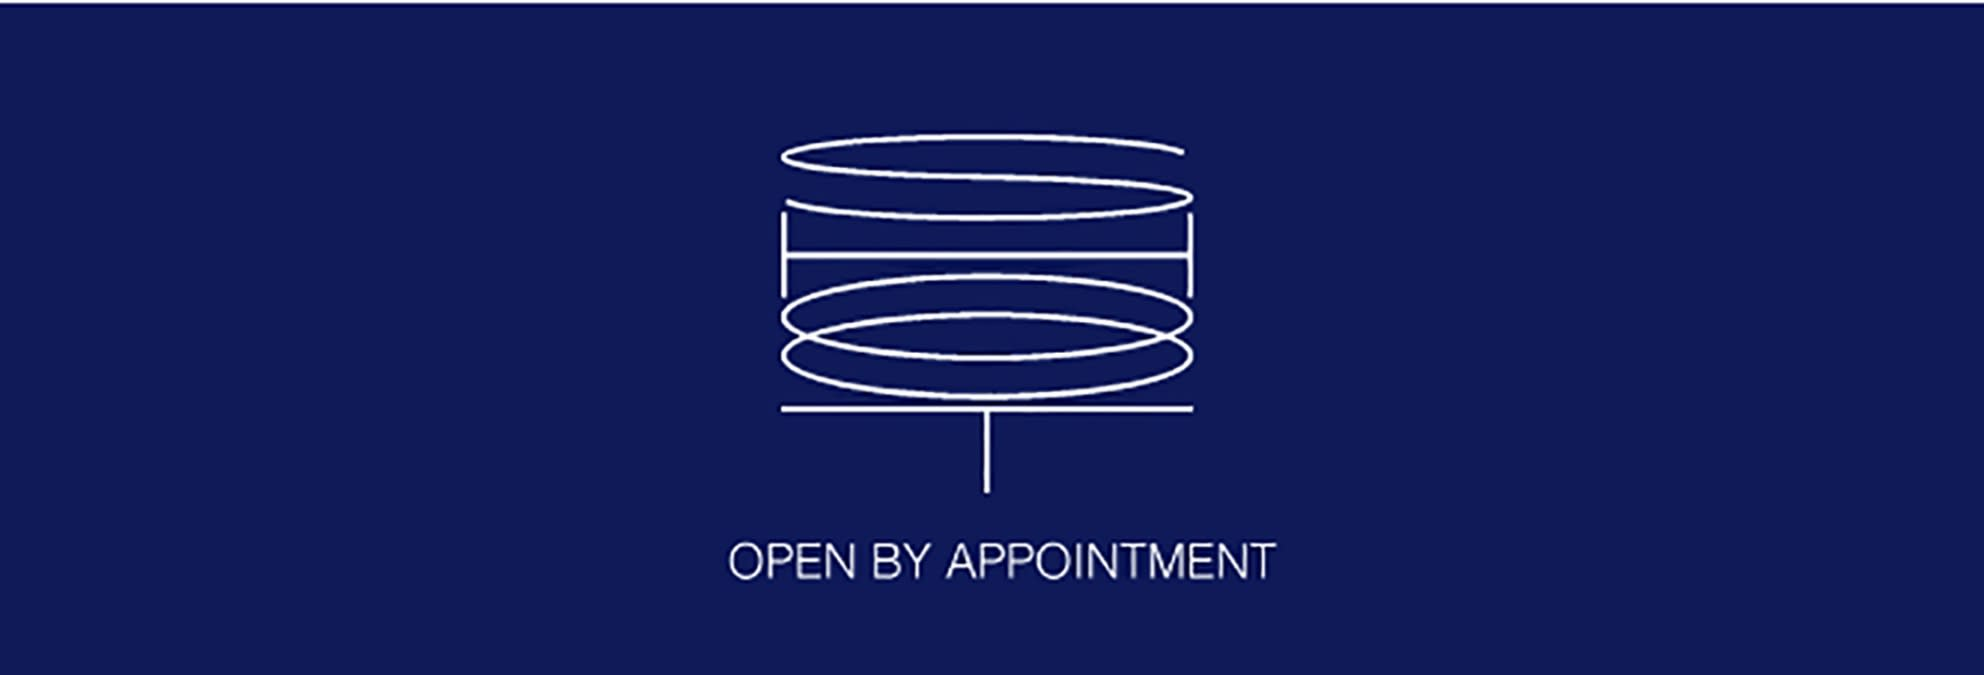 TEMPORARILY CLOSED : Open by appointment